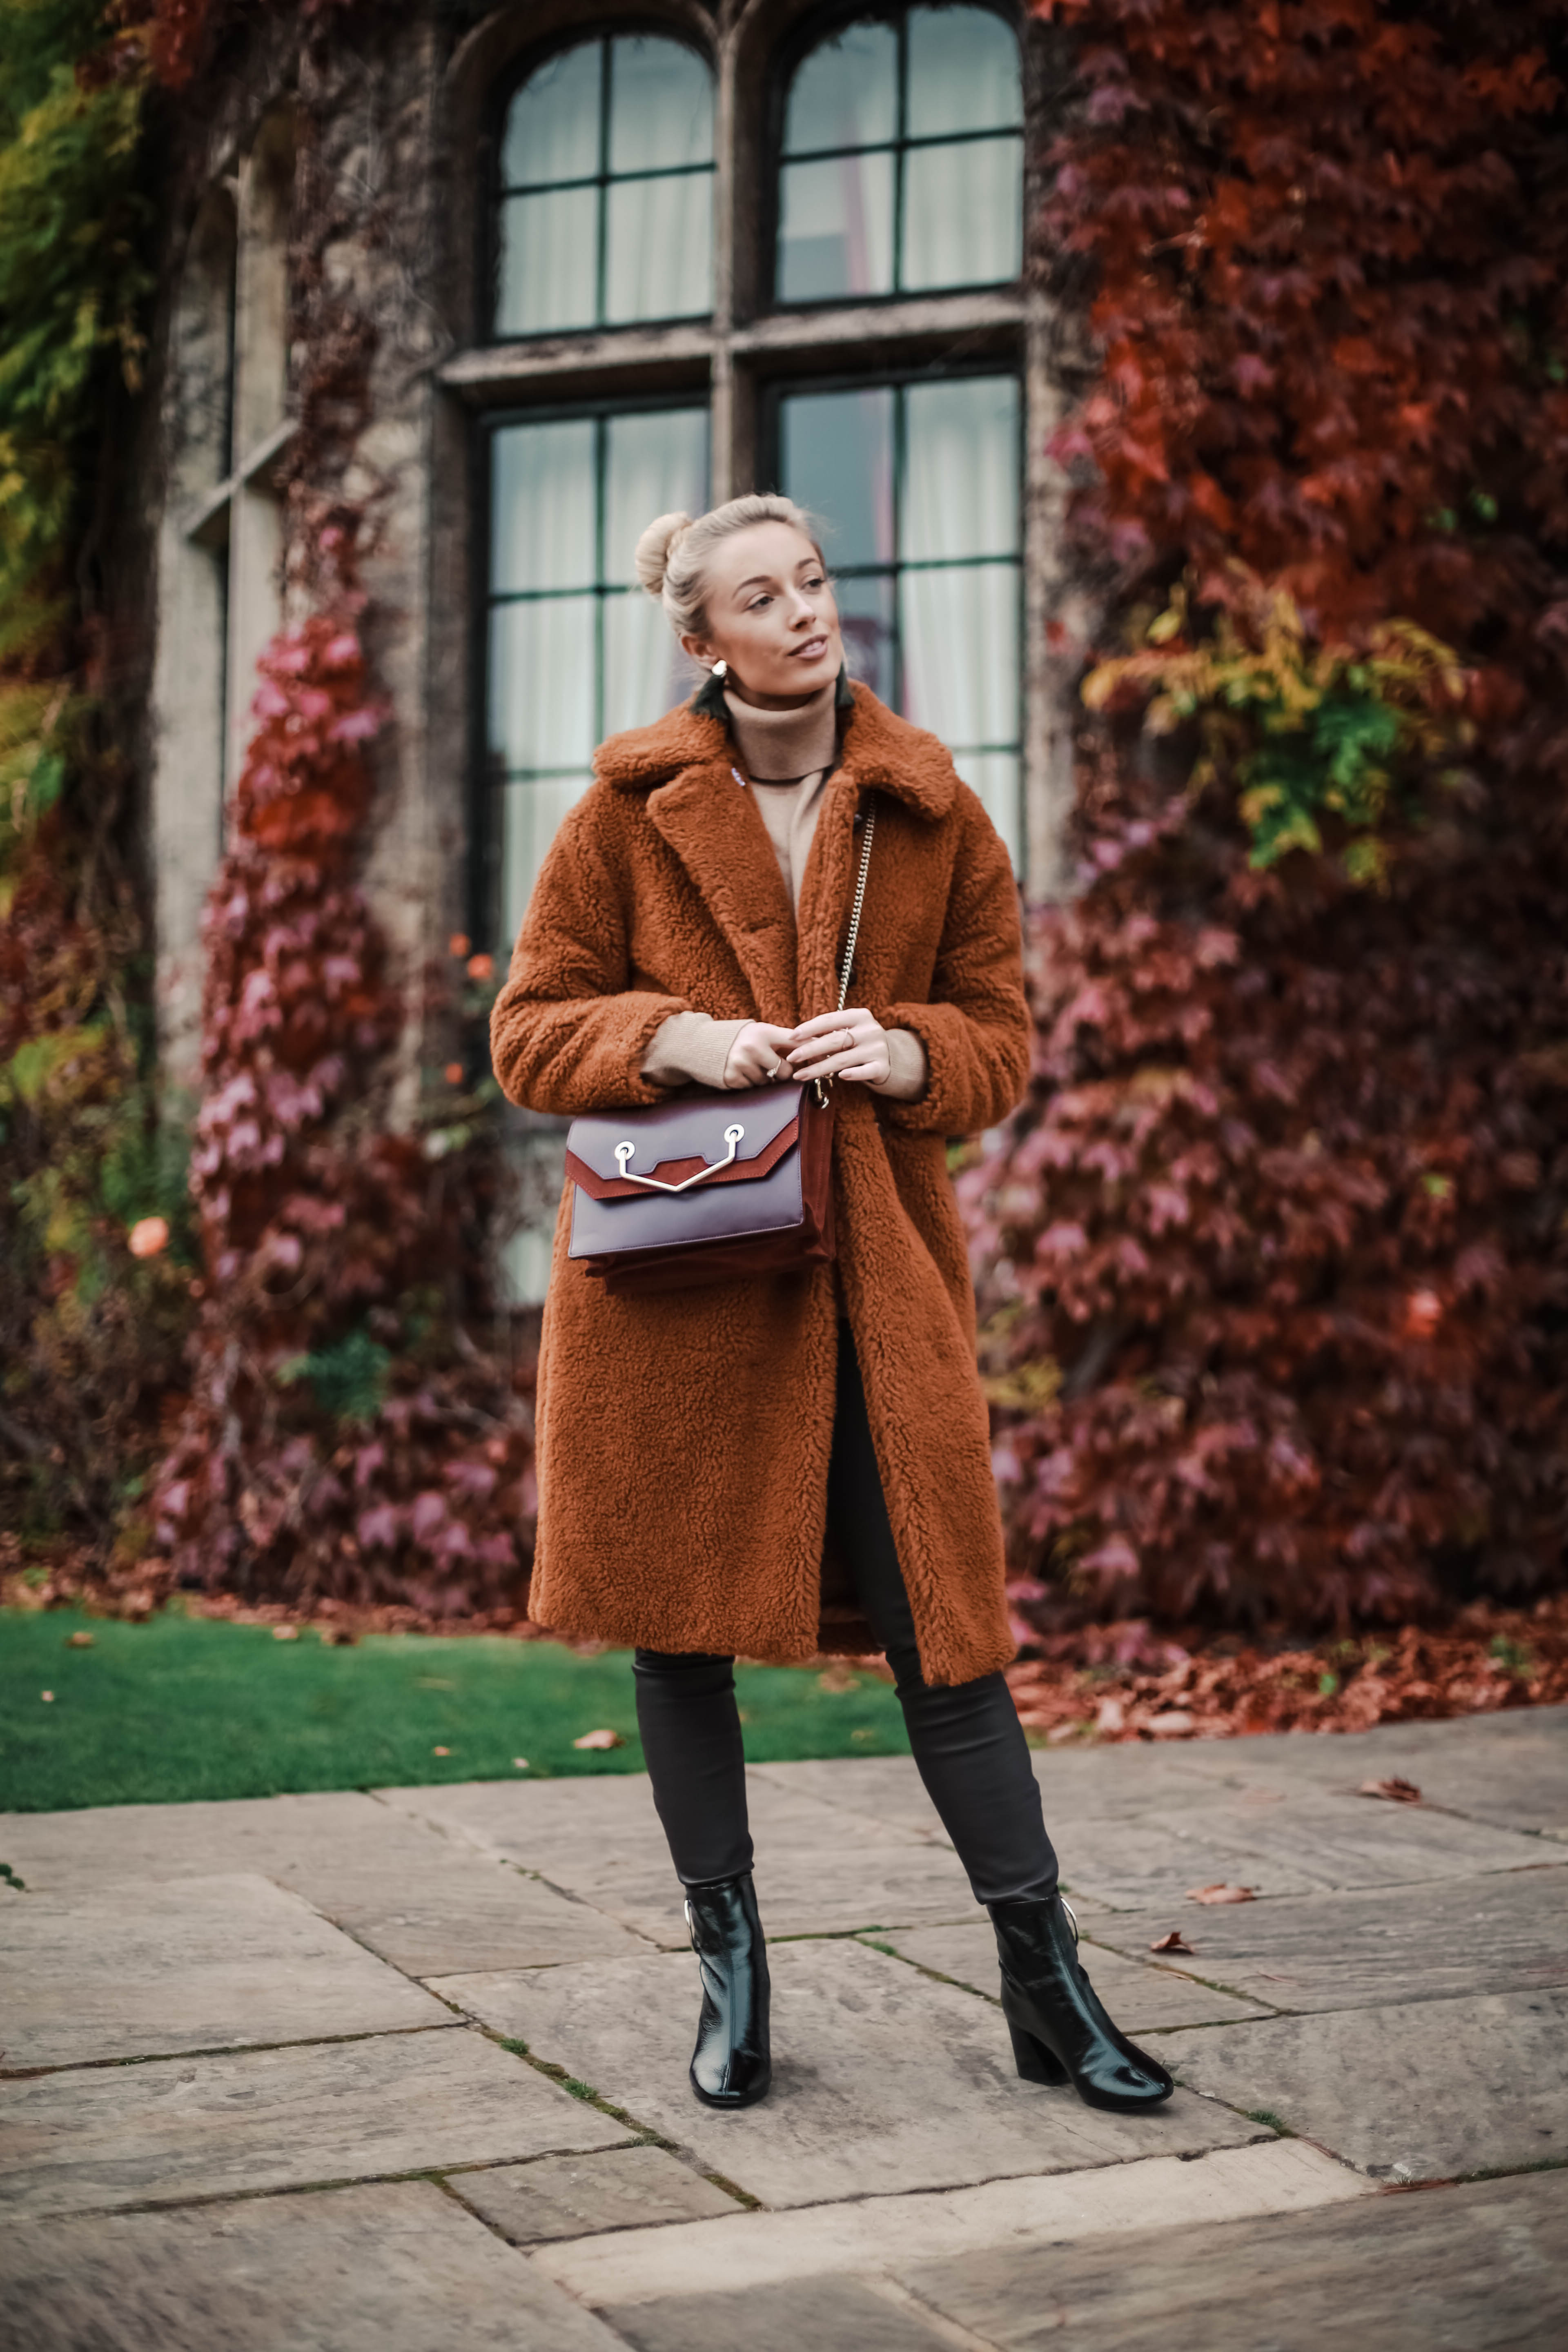 5 Fashion Trends For Fall 2013 From Berlin: 5 REASONS YOUR WARDROBE NEEDS A TEDDY BEAR COAT THIS